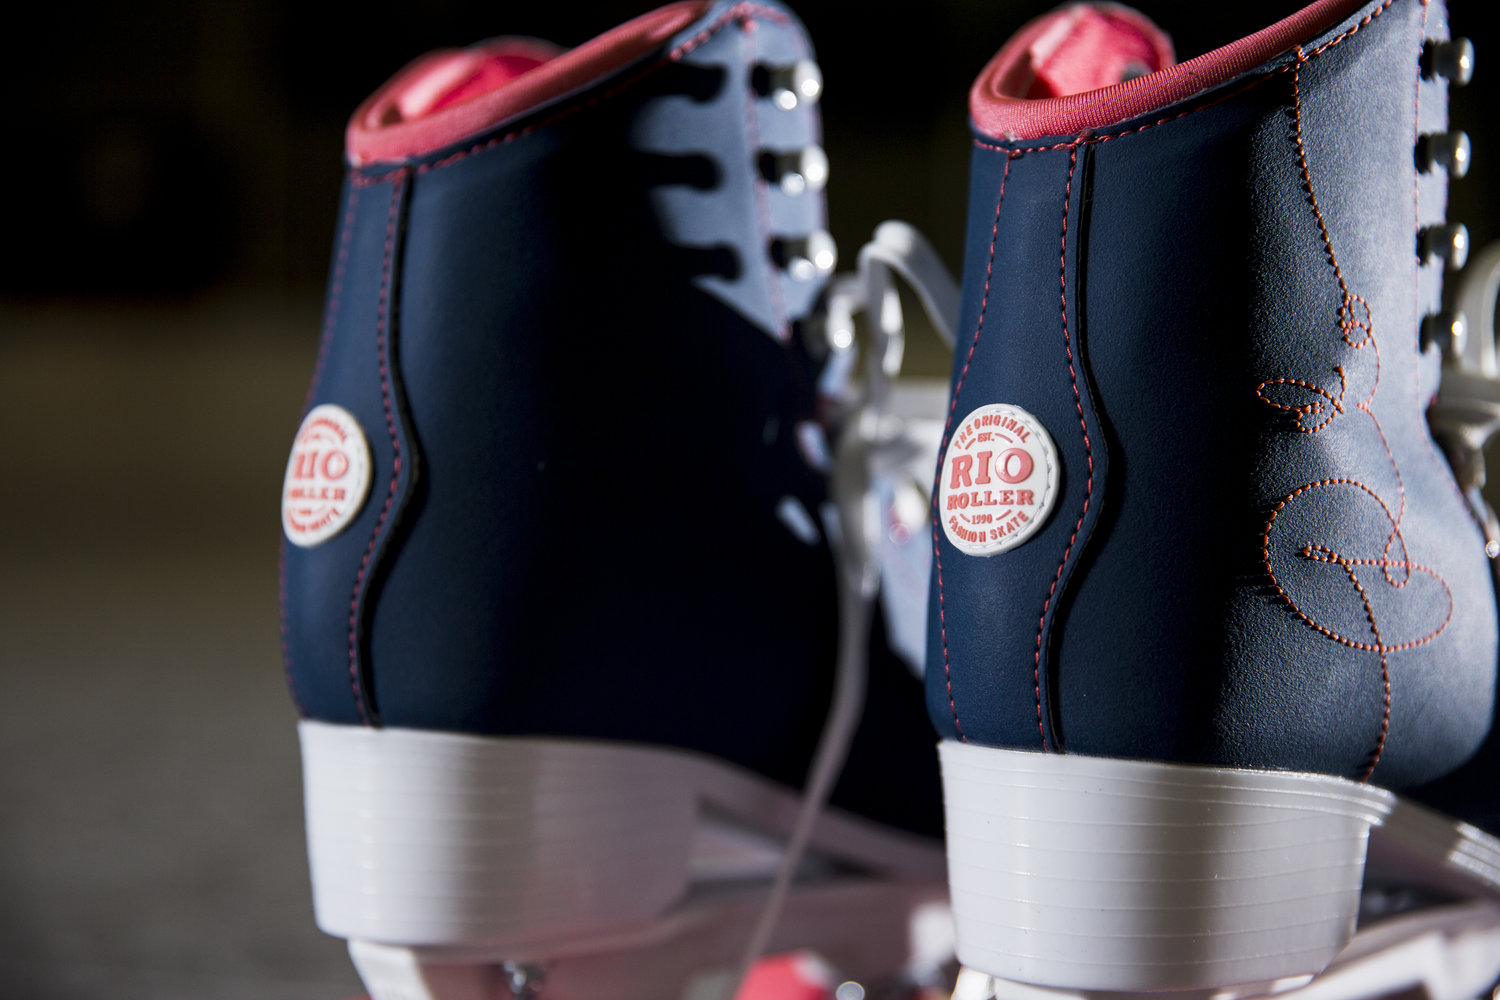 close up details on the new rio roller skates